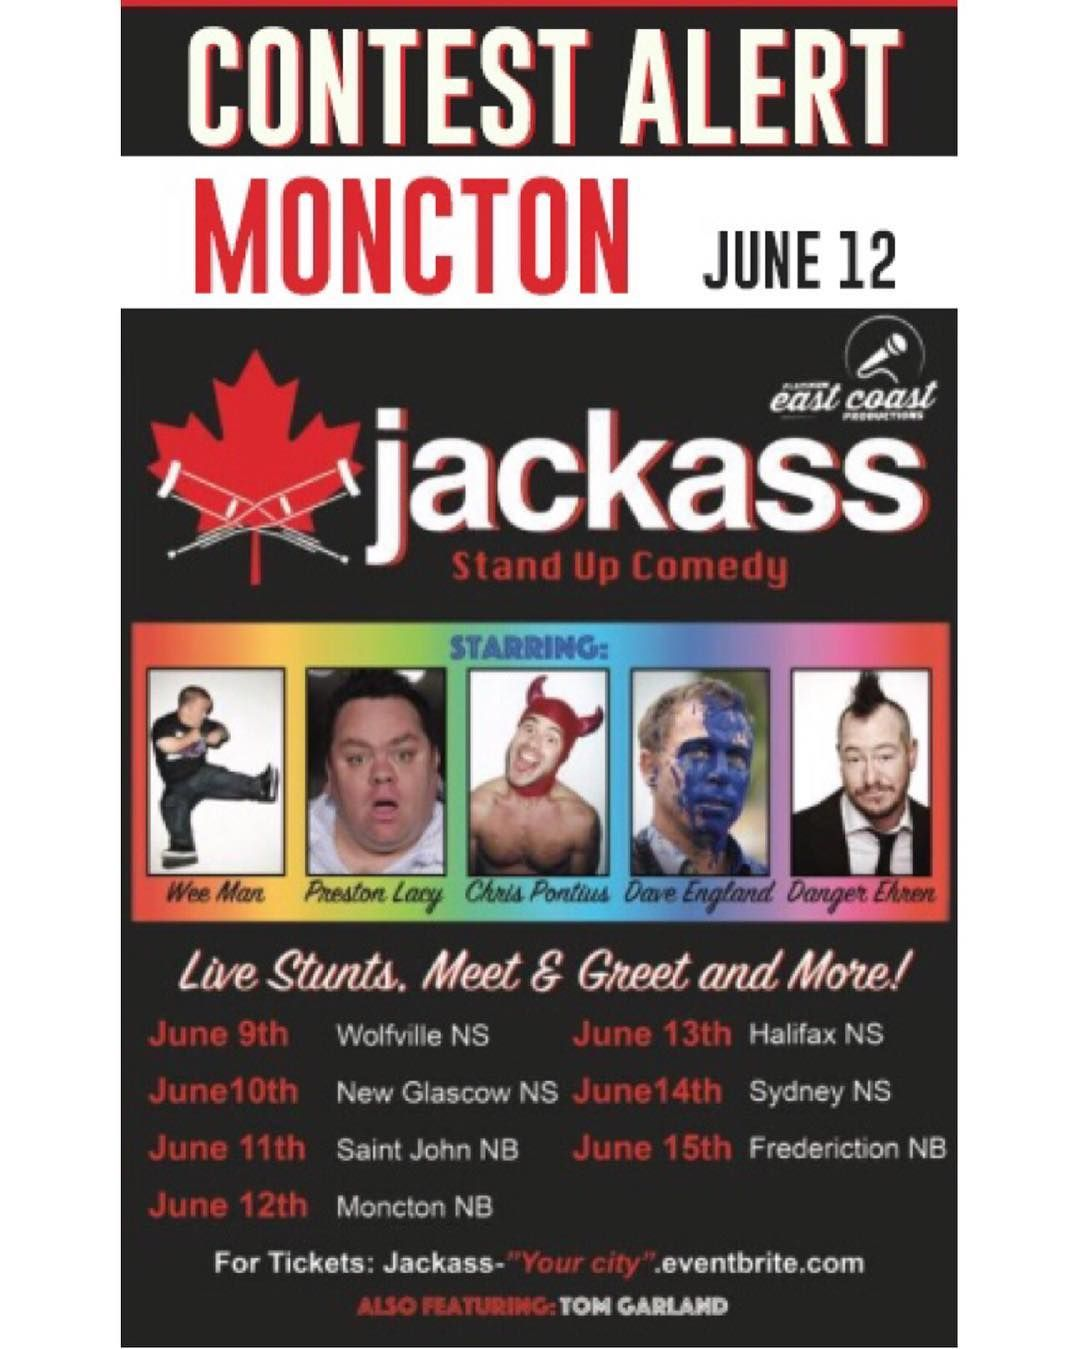 psst MONCTON 24 HOUR CONTEST . Who wants to go to the Jackass Canada stand up comedy tour?!! Im giving away a pair of tickets for EVERY STOP OF THE TOUR!!! This one is a little different than usual so comment under the photo of the tour stop you want tickets for. ( This is also happening on @noiseNB if you have friends in New Brunswick or a reallllly into jackass)  the show is @iamwean @daveenglandshoot @chrispontius @dangerehren etc . Here's how the contest works: . 1. Follow @halifaxnoise…